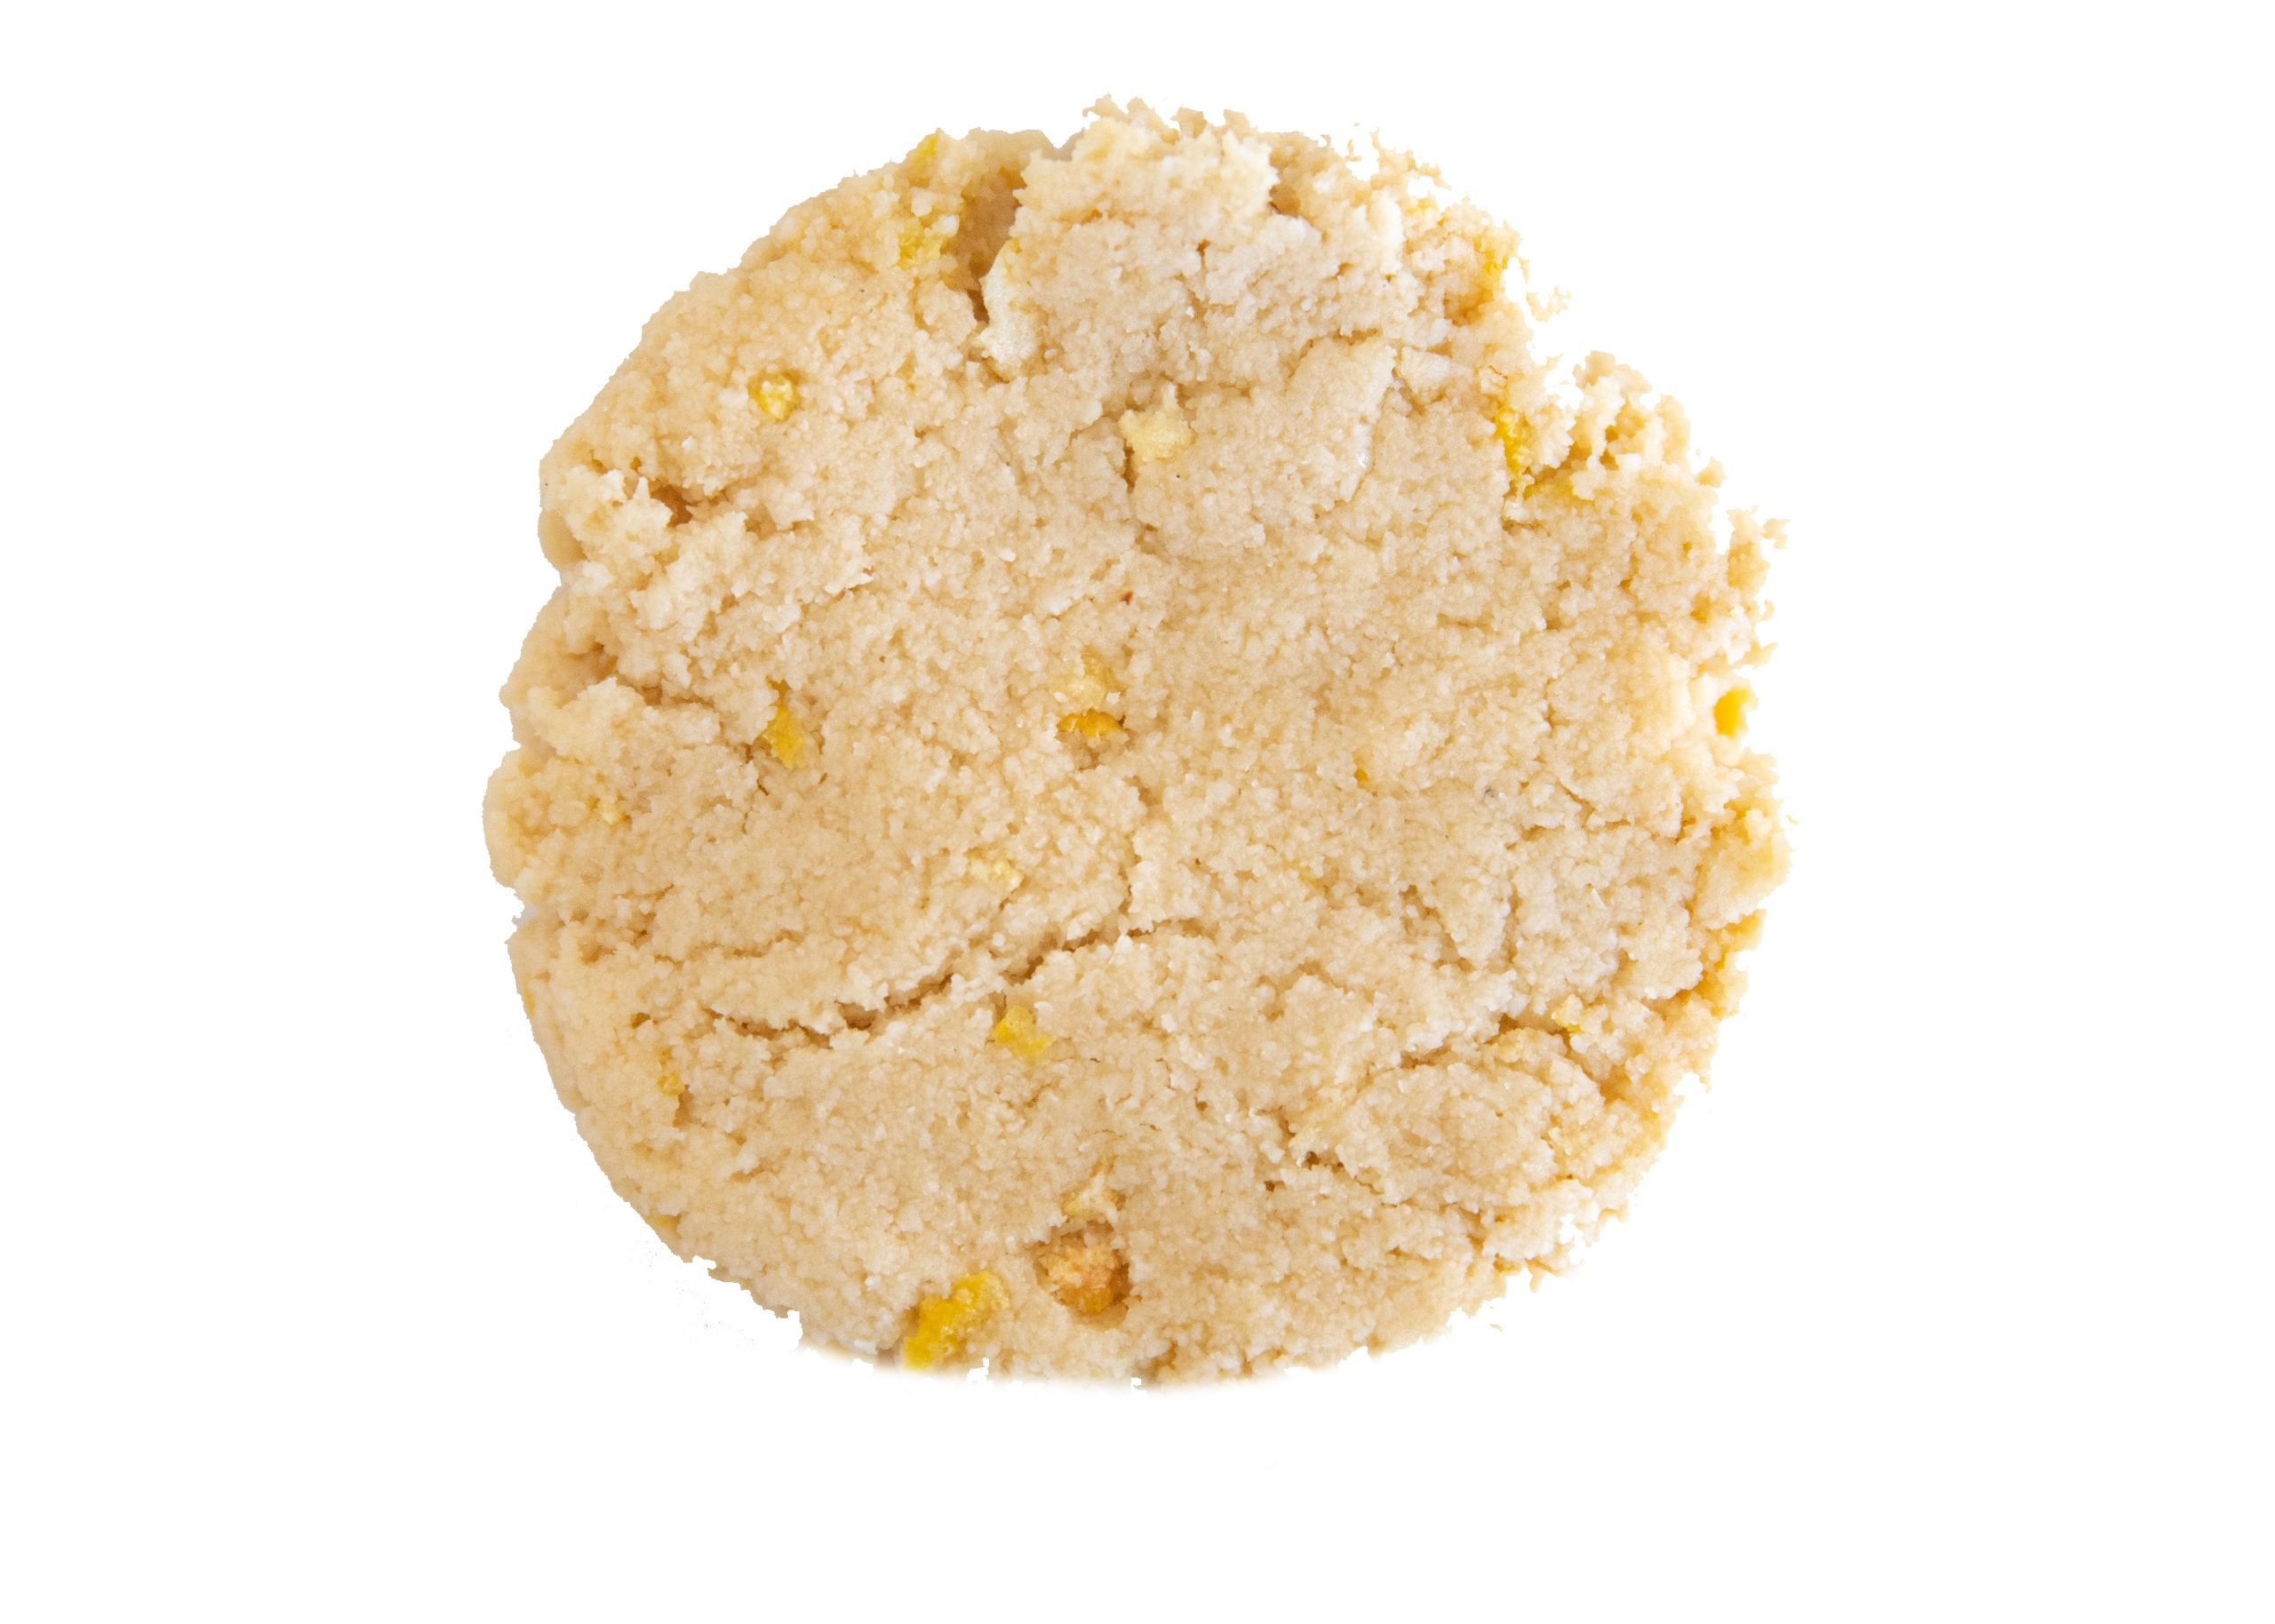 Lemon Cookies (1 Dozen)